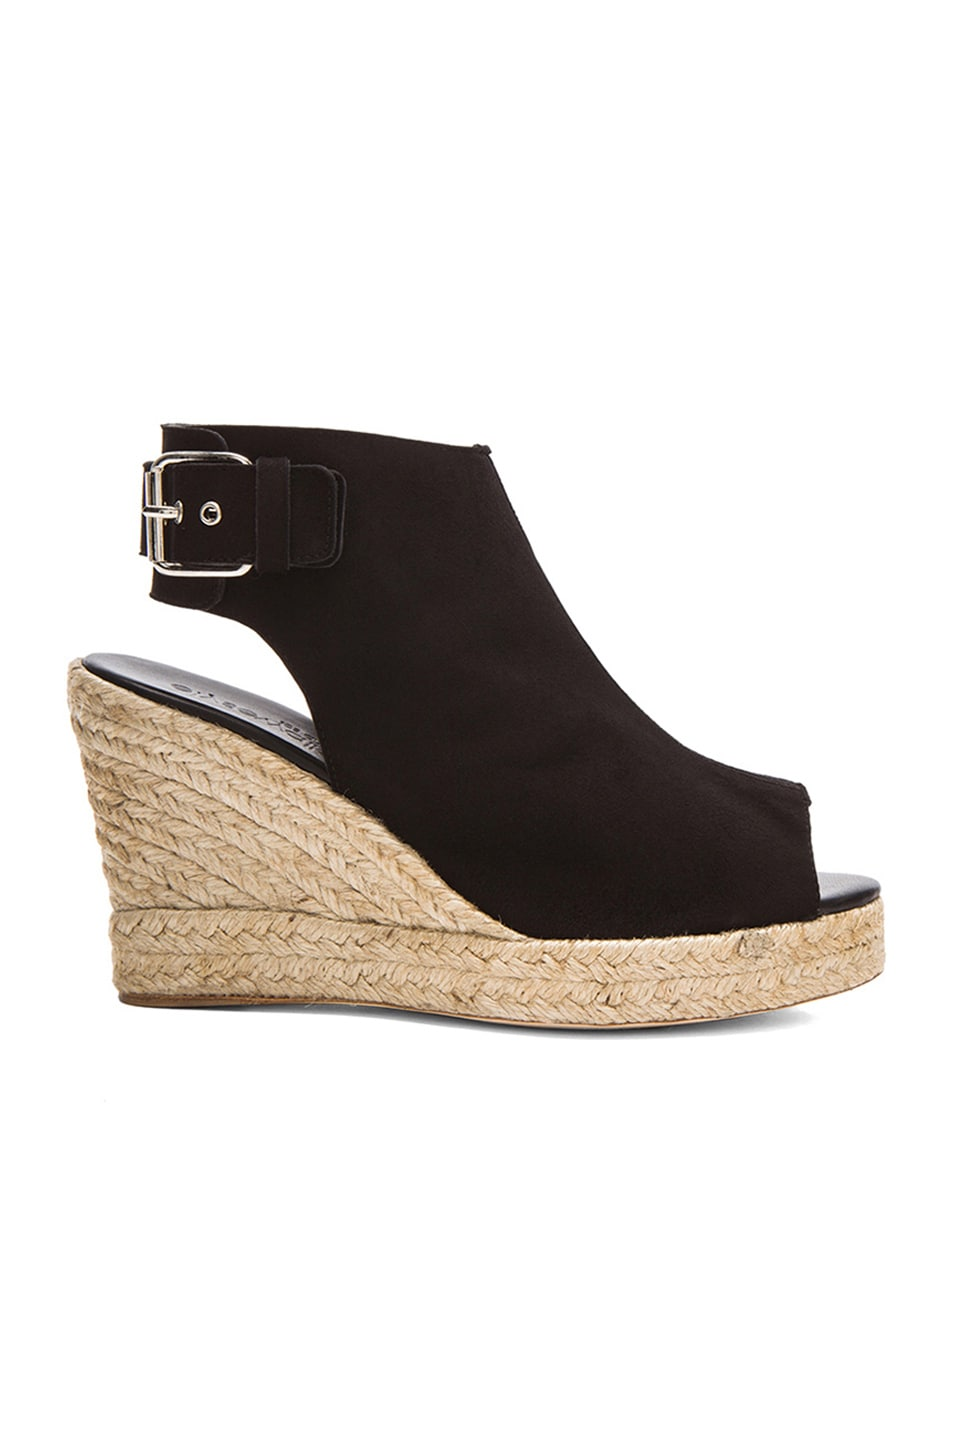 Image 1 of elysewalker los angeles Lesley Suede Wedges in Black